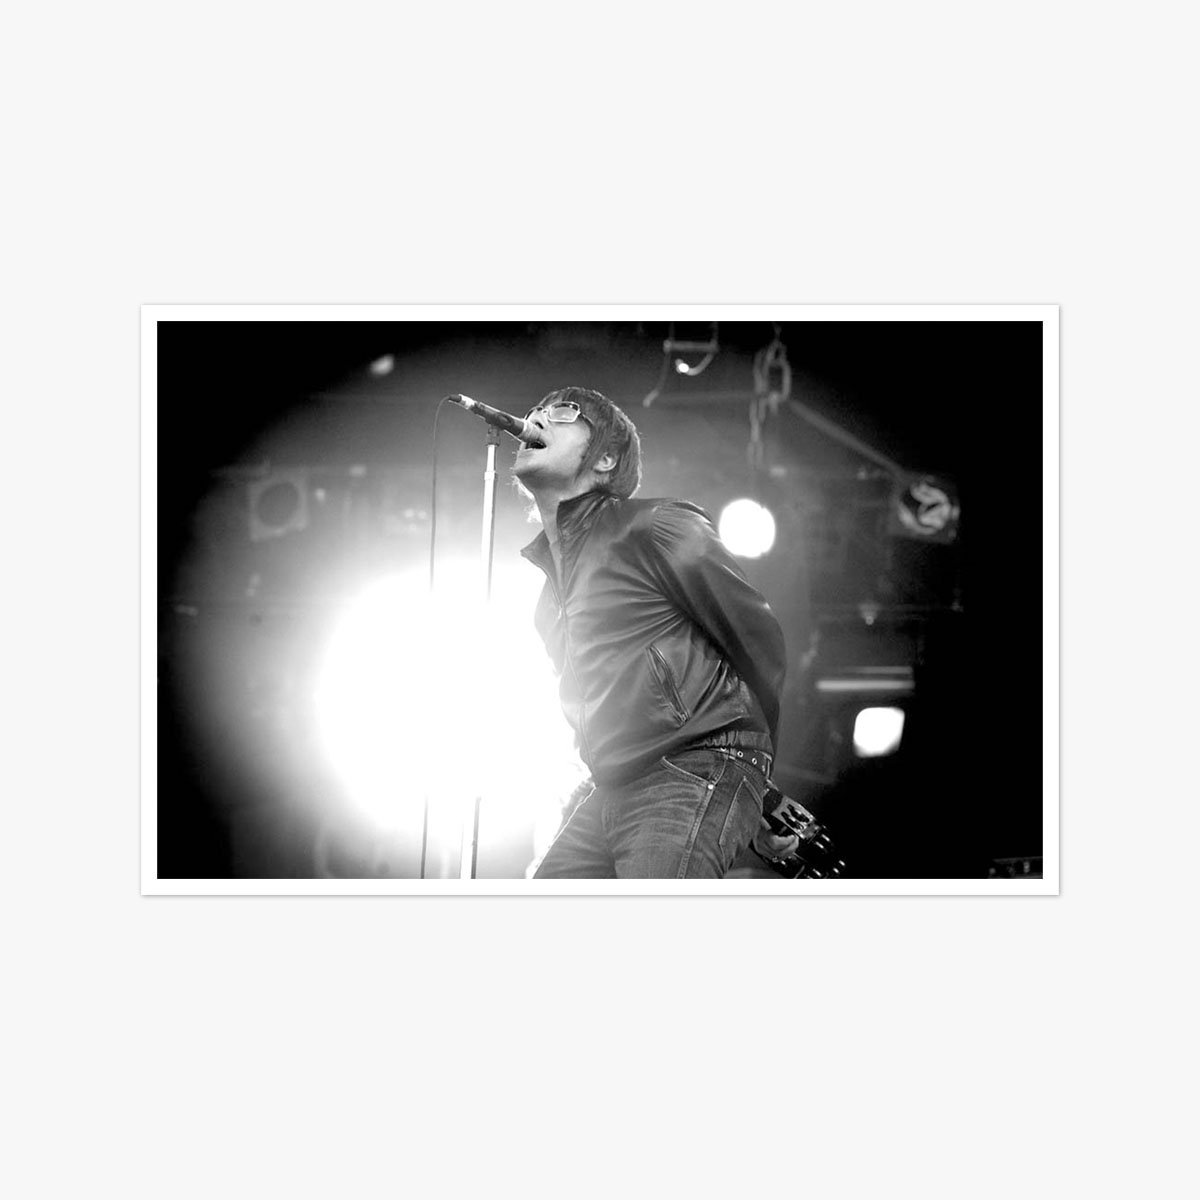 Liam Gallagher performing at Finsbury Park by Andy Paradise